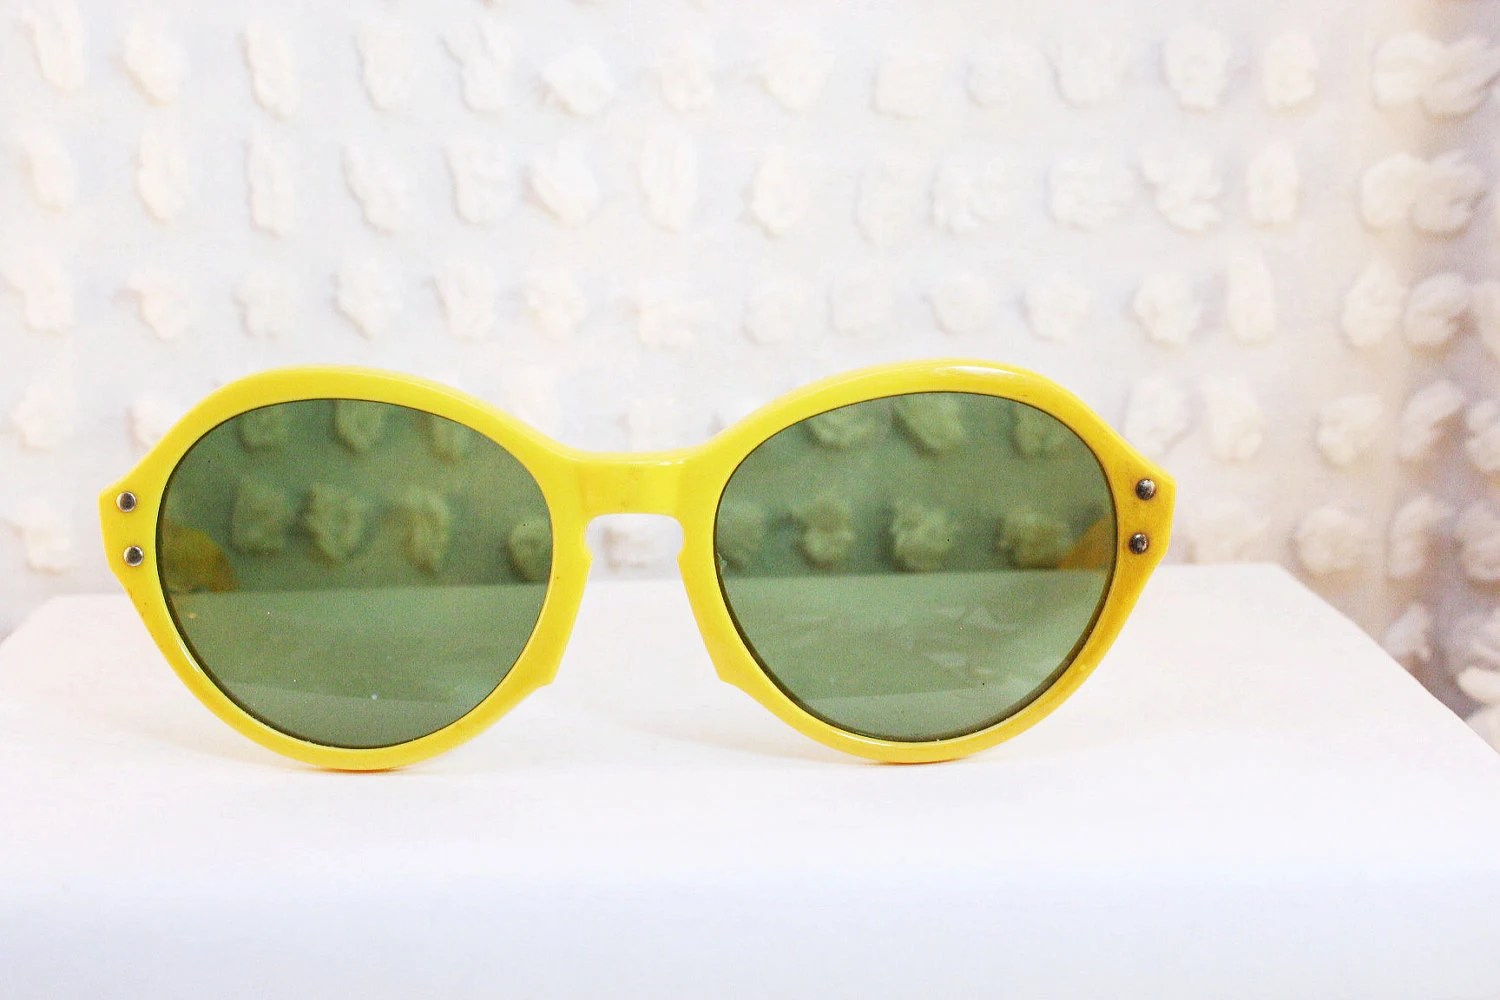 Yellow 1960's Round Sunglasses Bright Horn Rim Sunny Simple Non Prescription Green Tint Lens - THAYEReyewear